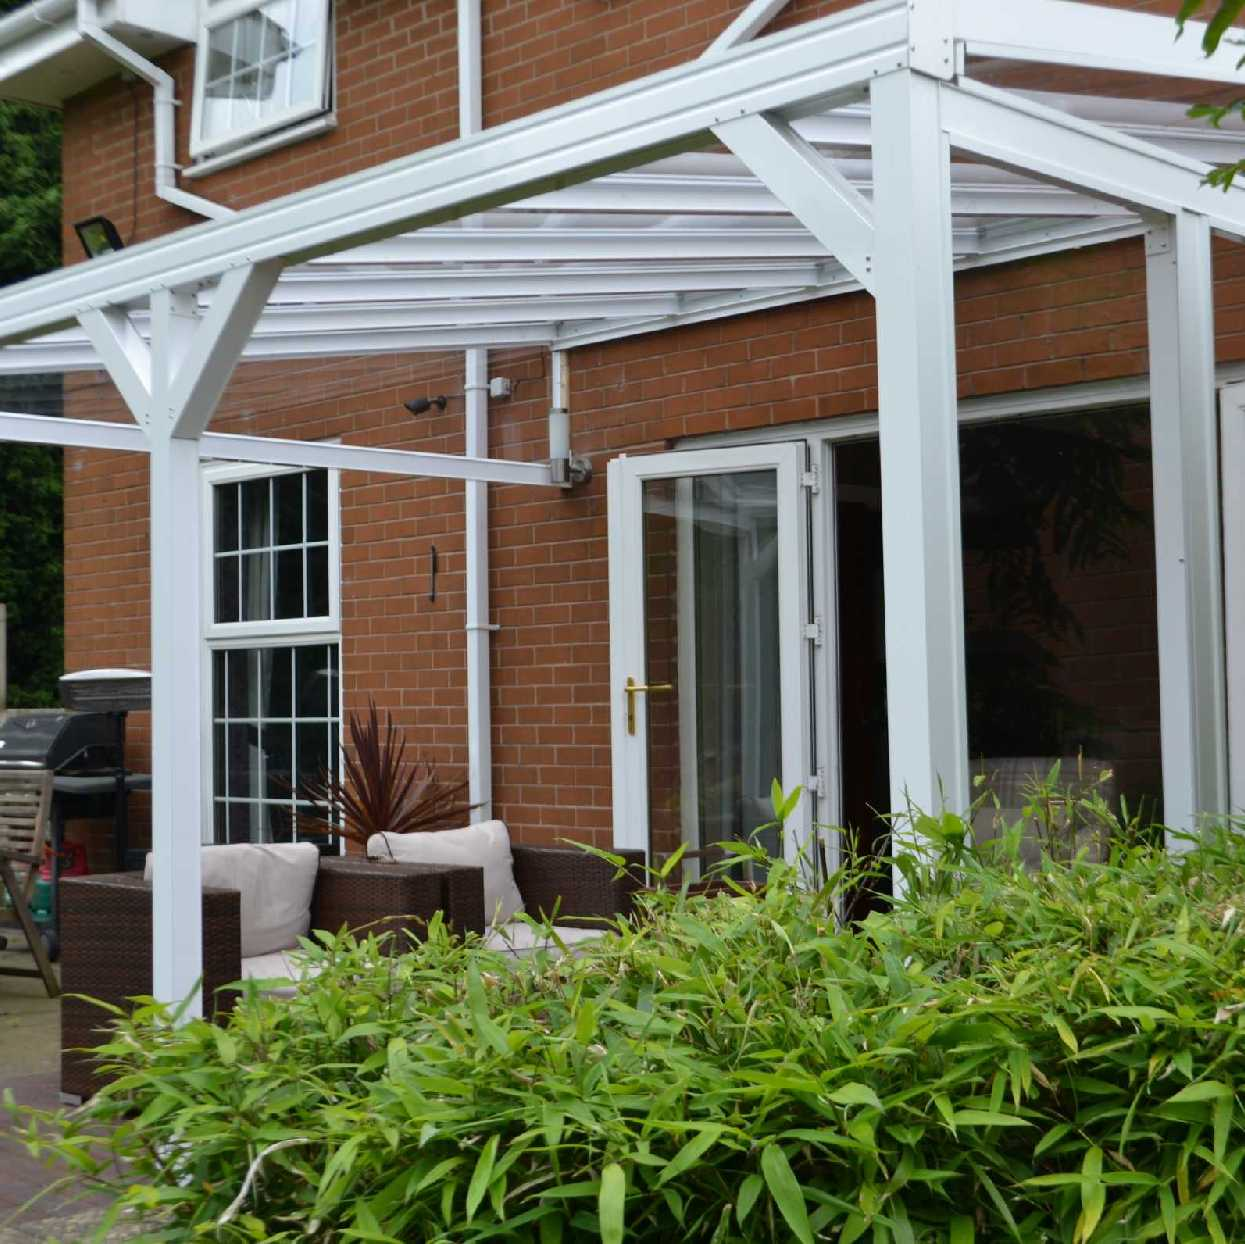 Omega Smart Lean-To Canopy UNGLAZED for 6mm Glazing - 3.5m (W) x 3.5m (P), (3) Supporting Posts from Omega Build